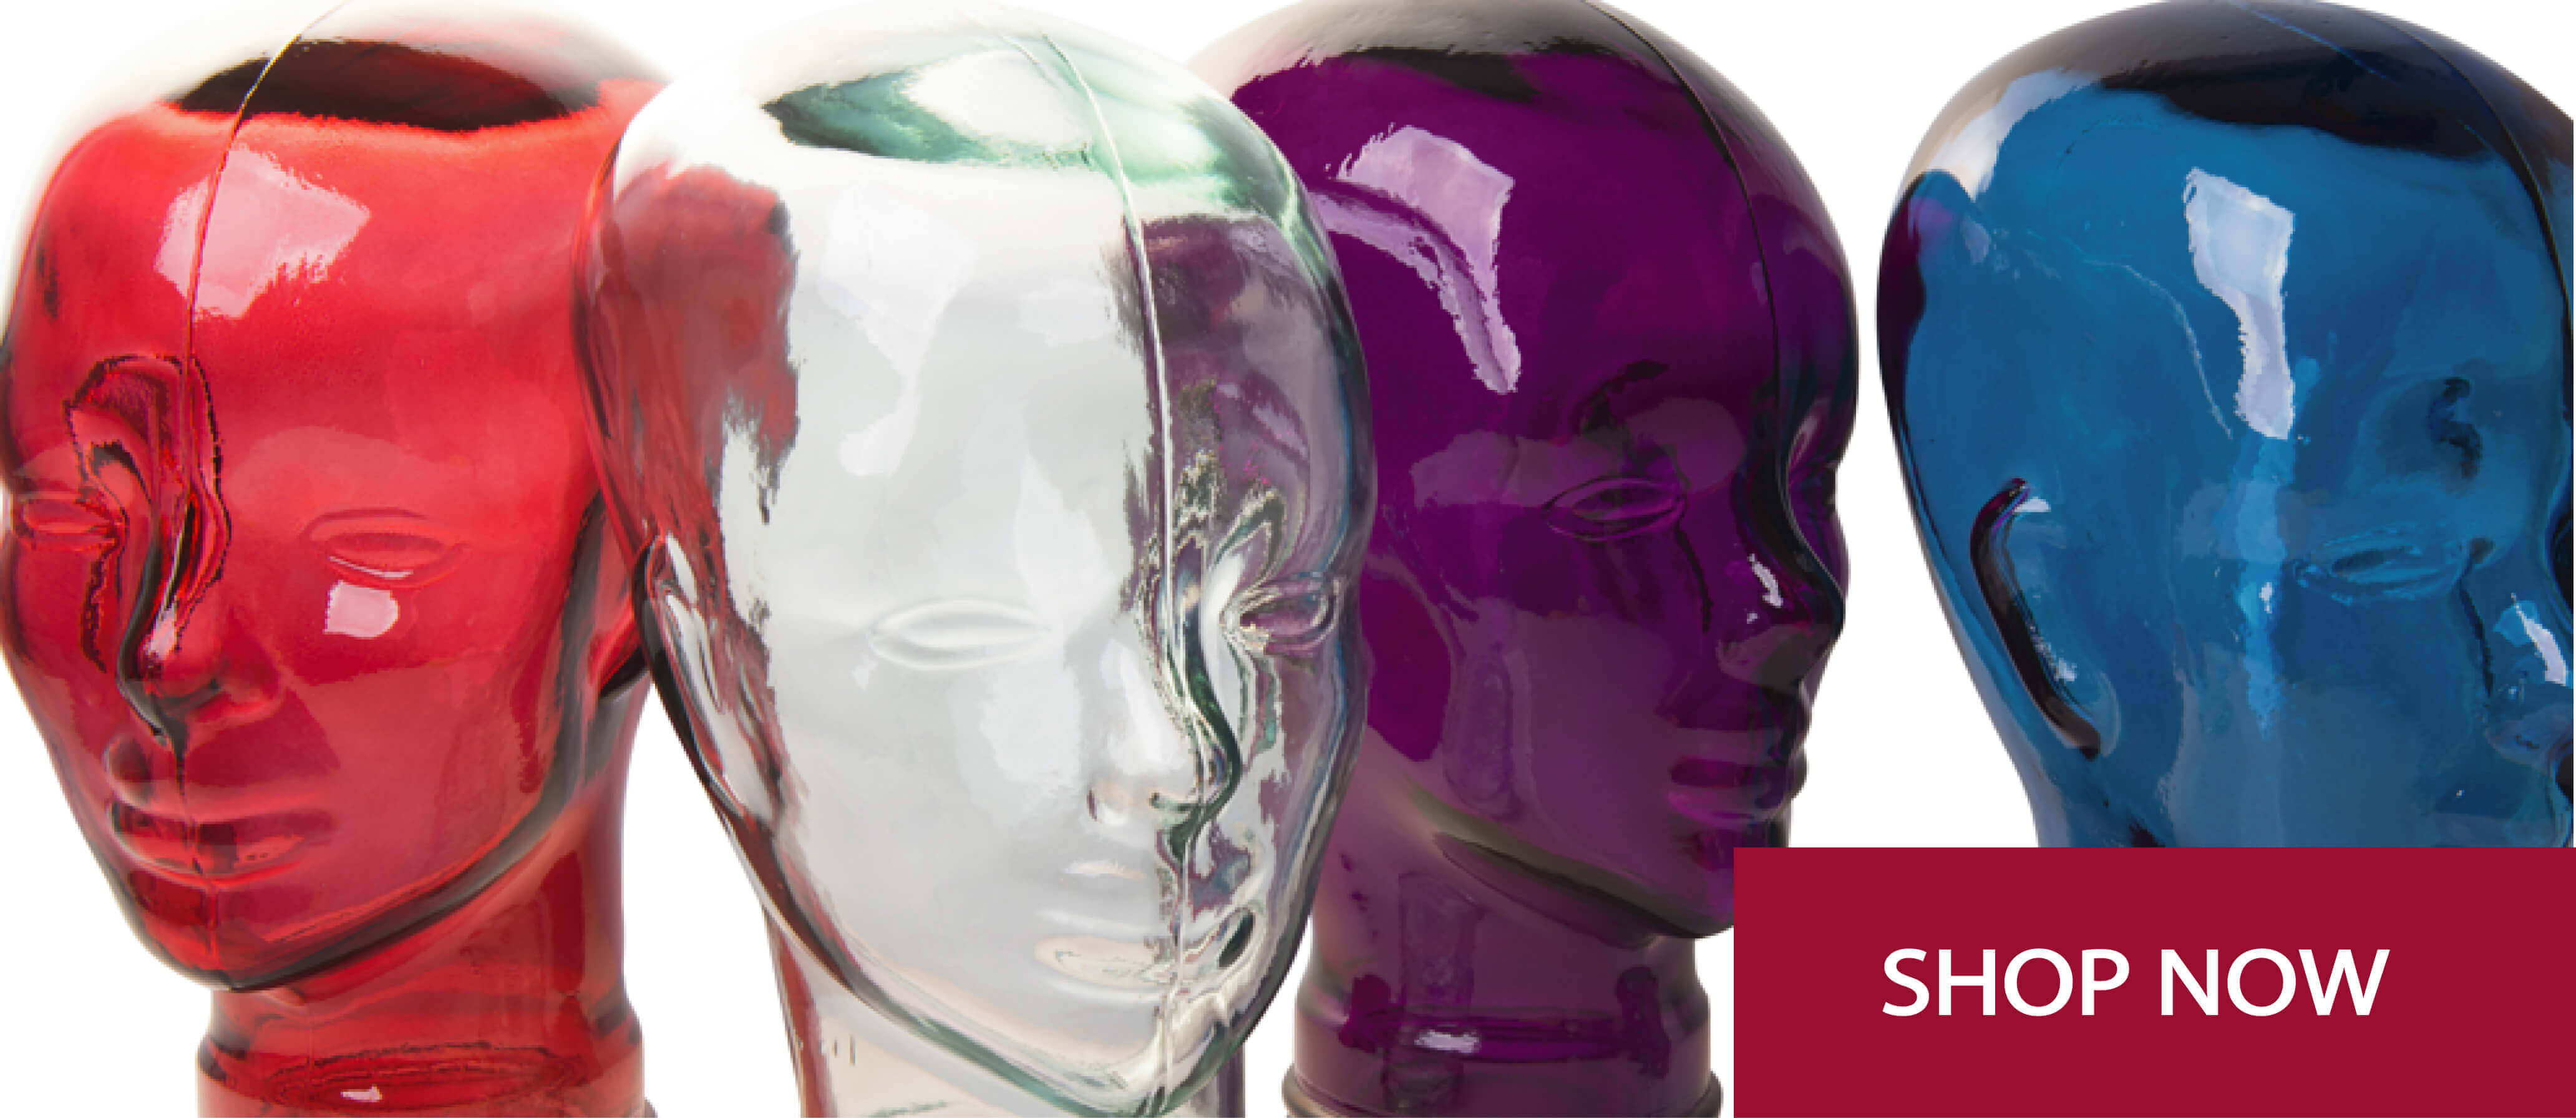 glass heads